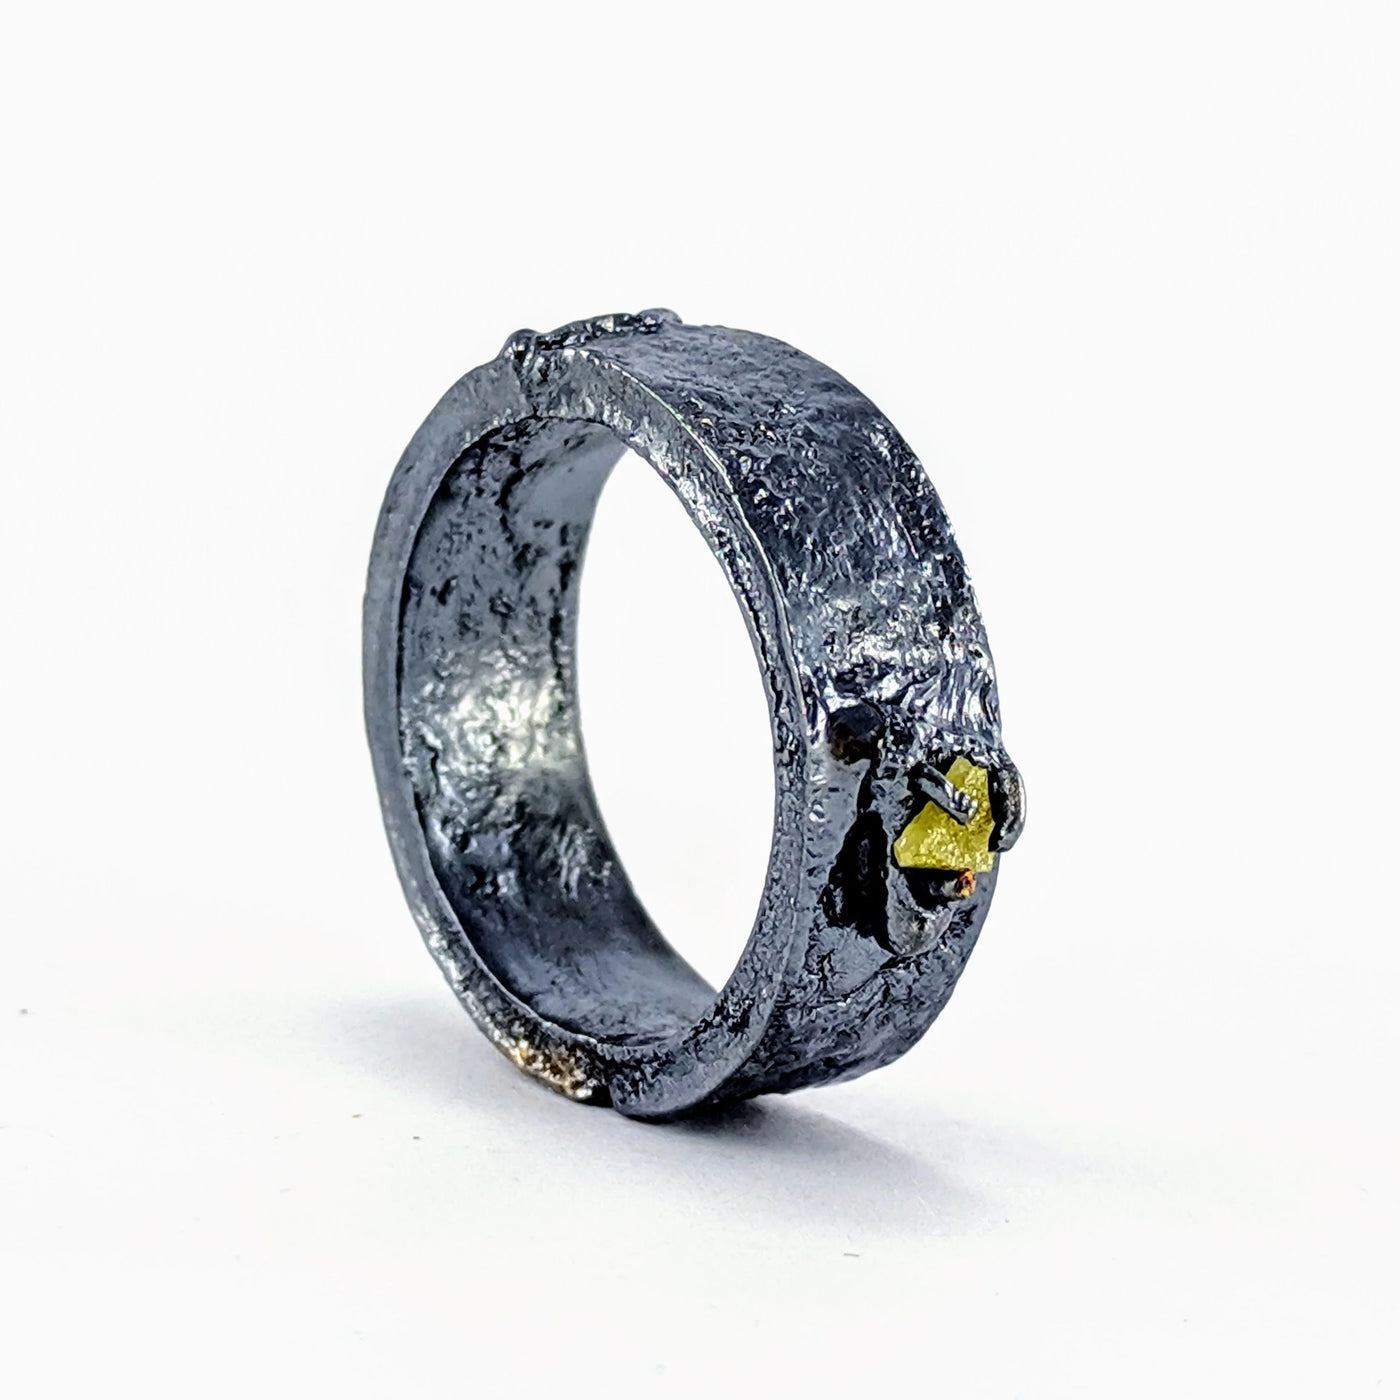 Future Artefact diamond slice ring